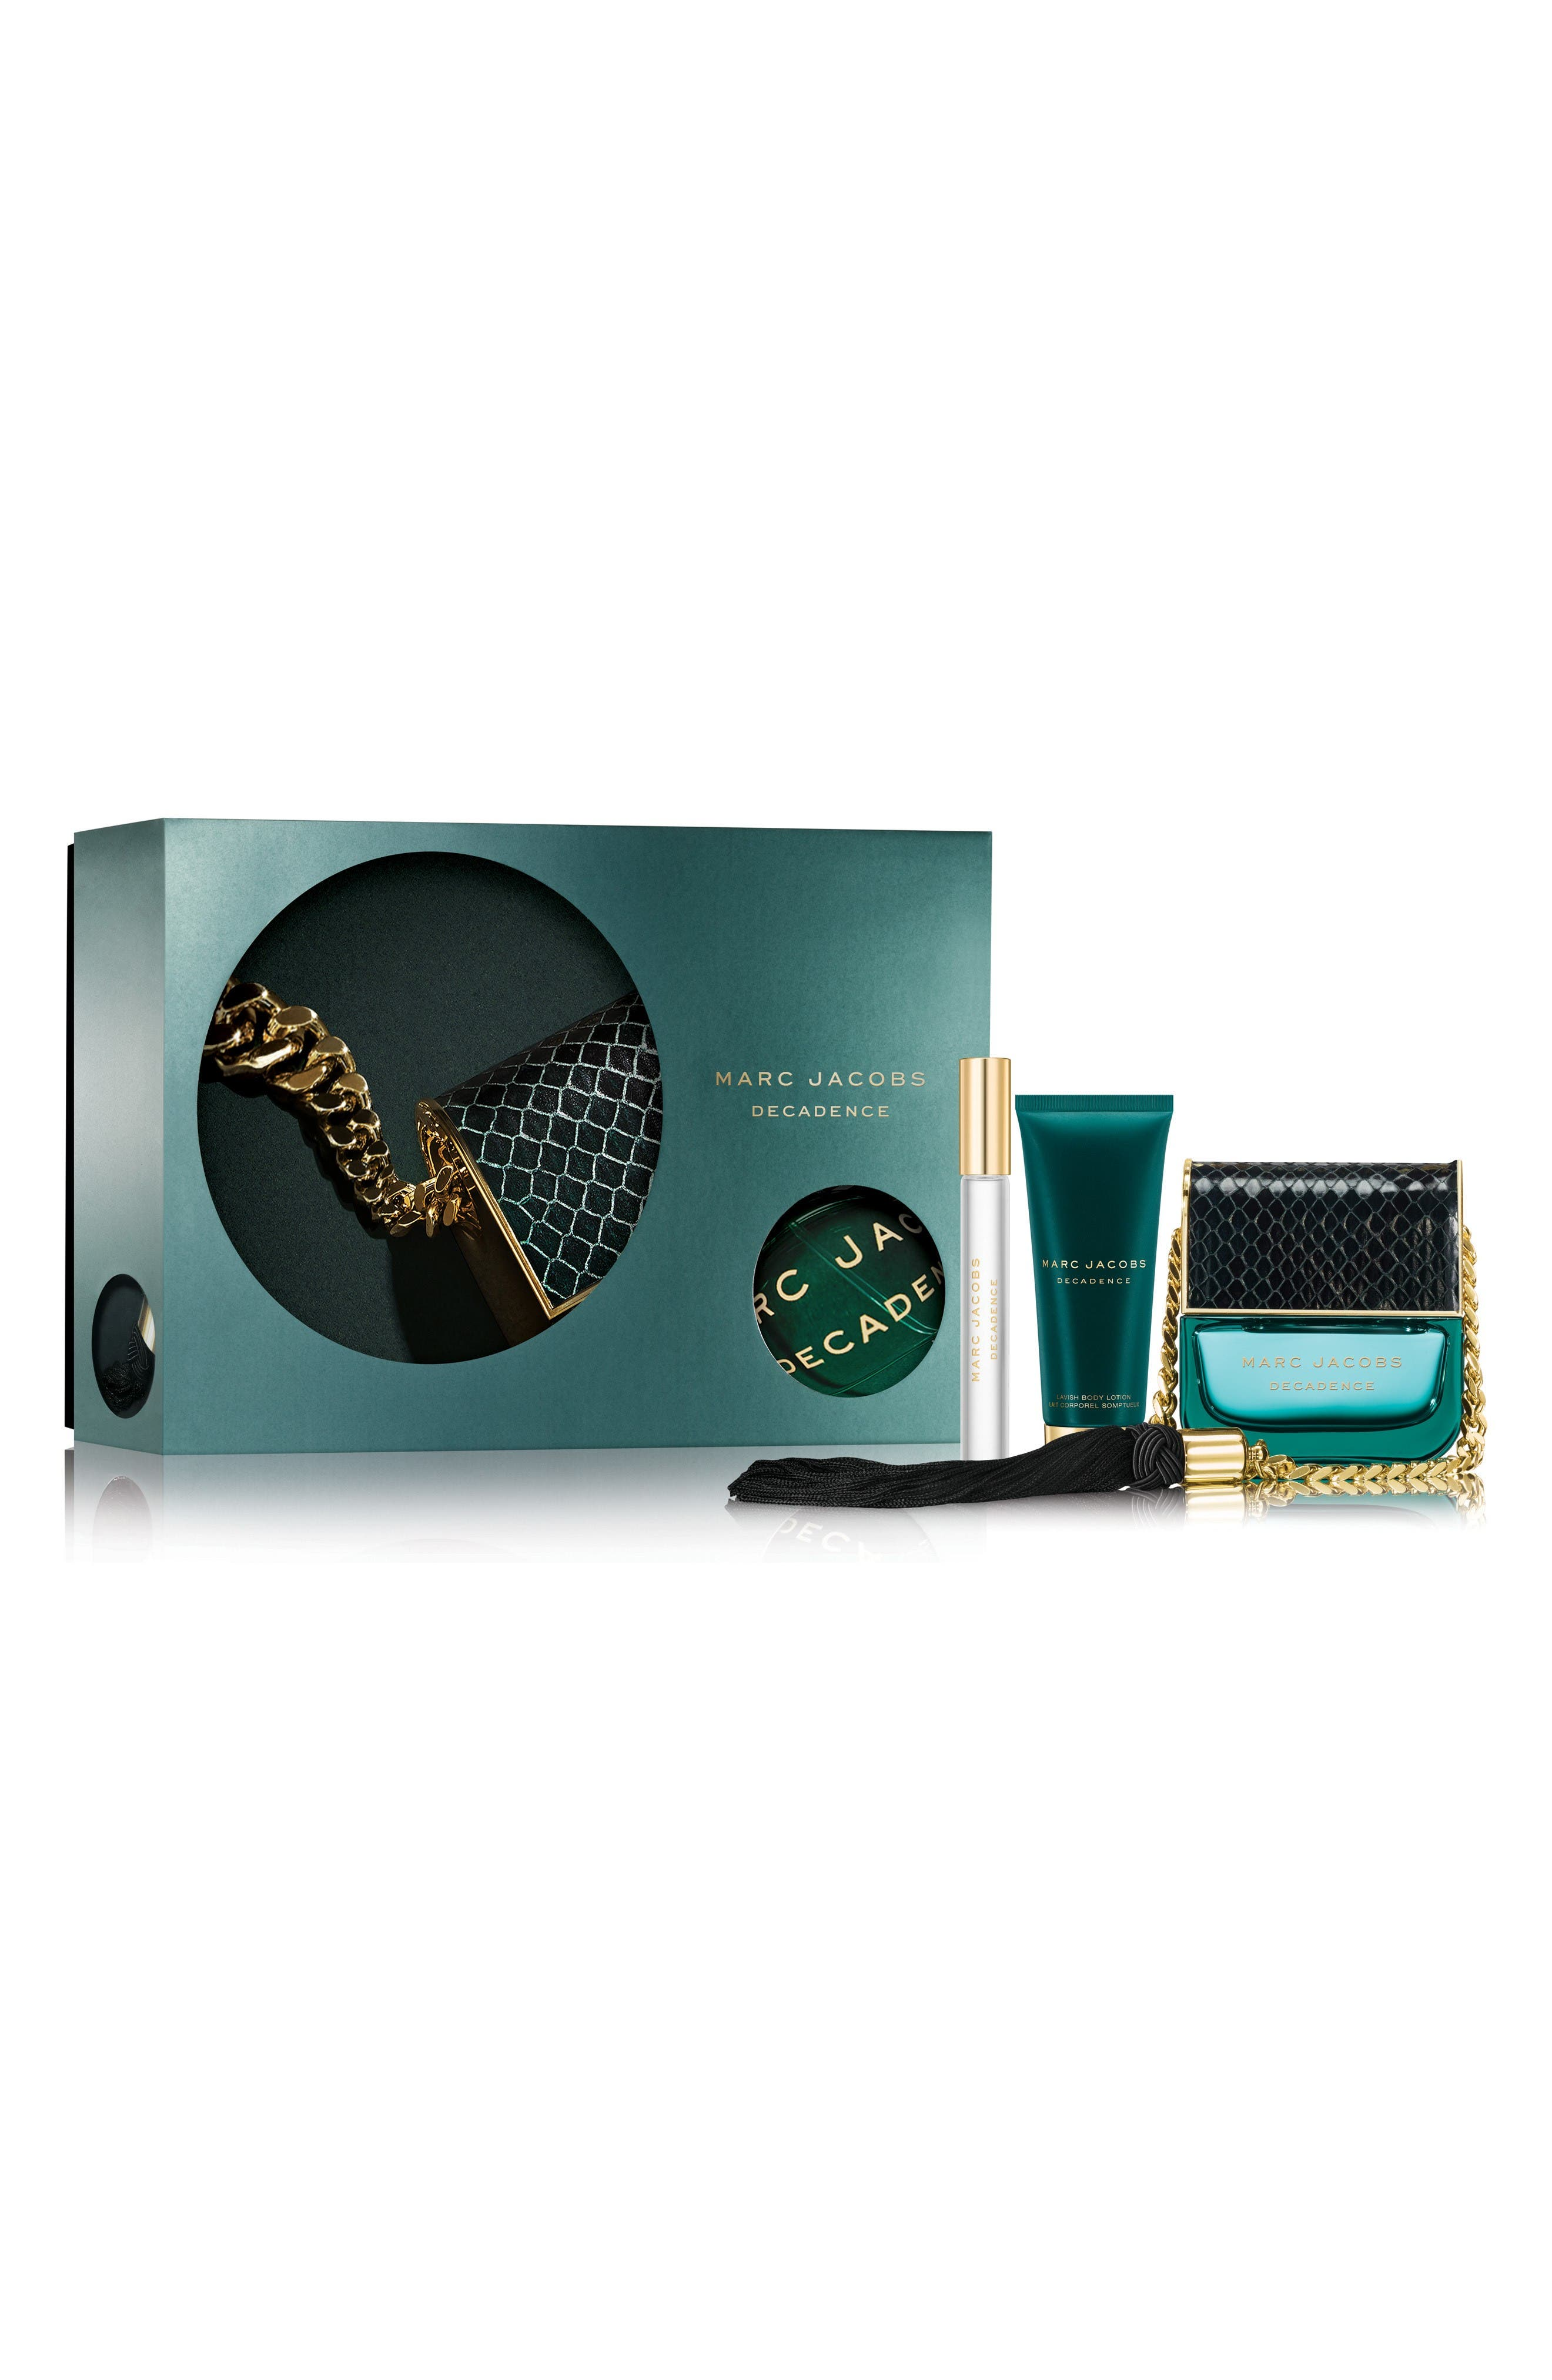 Alternate Image 1 Selected - MARC JACOBS Decadence Set (Limited Edition) ($177 Value)